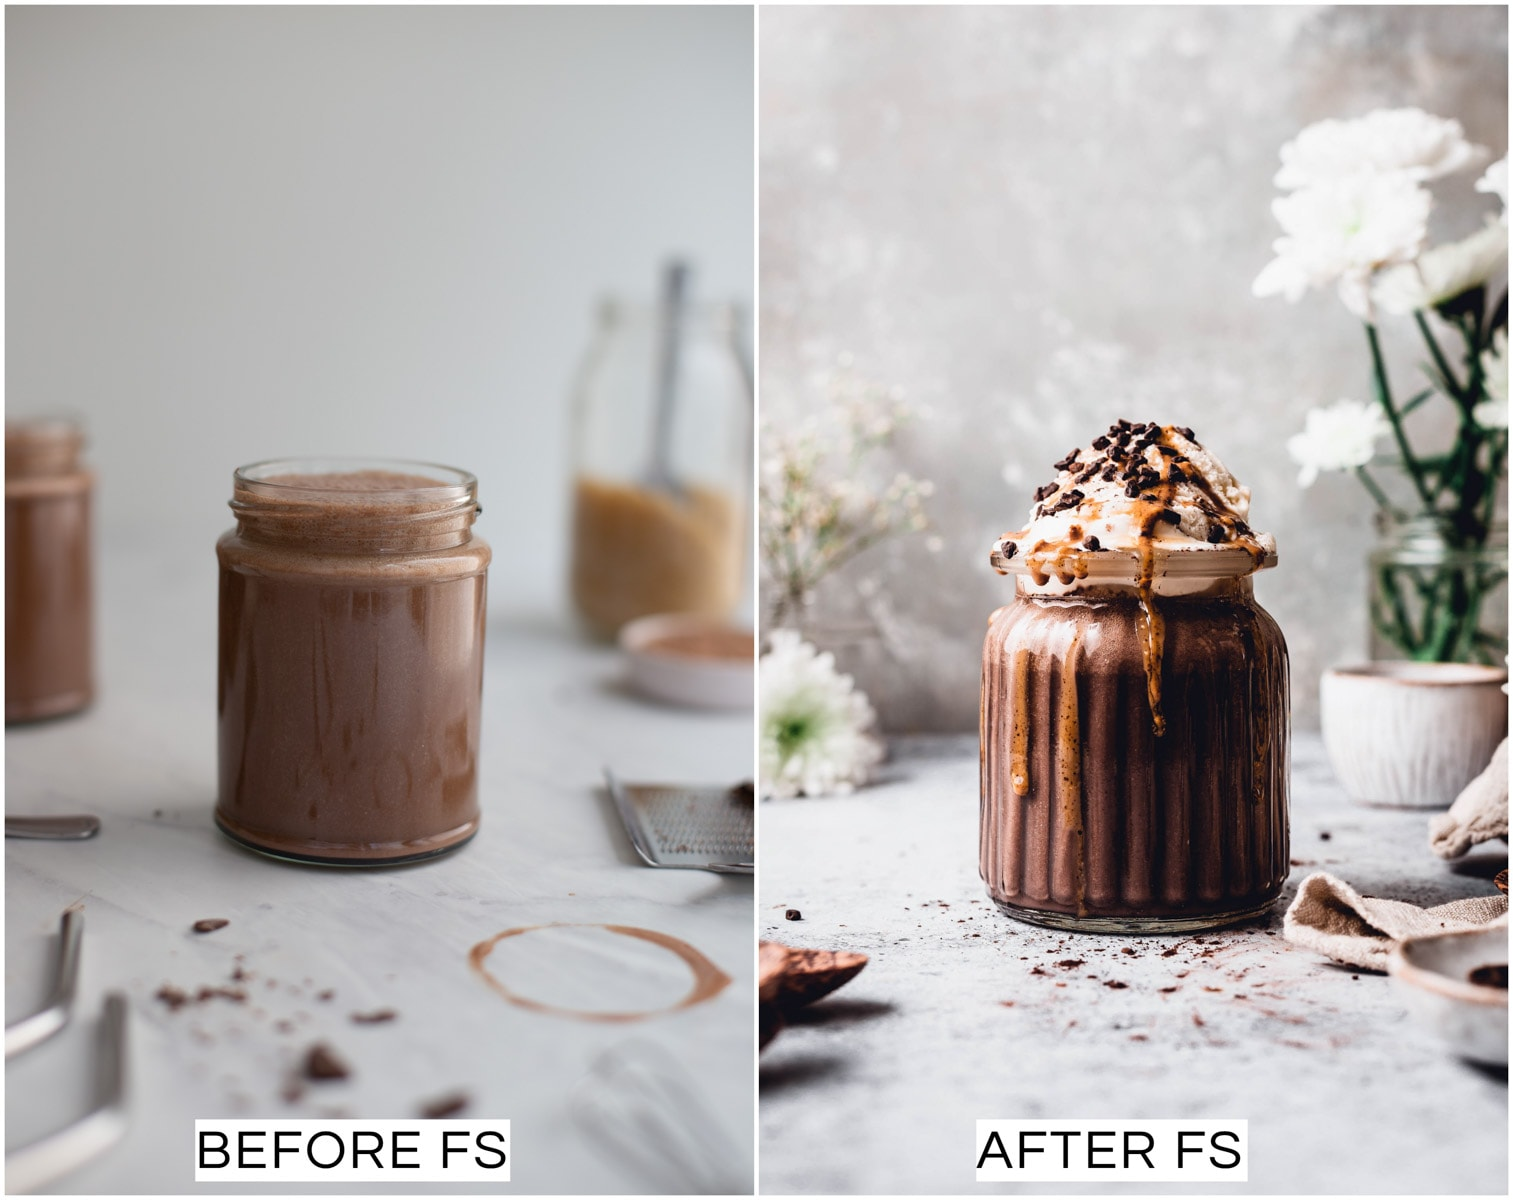 A collage of two images showing a before and after picture of a chocolate milkshake.